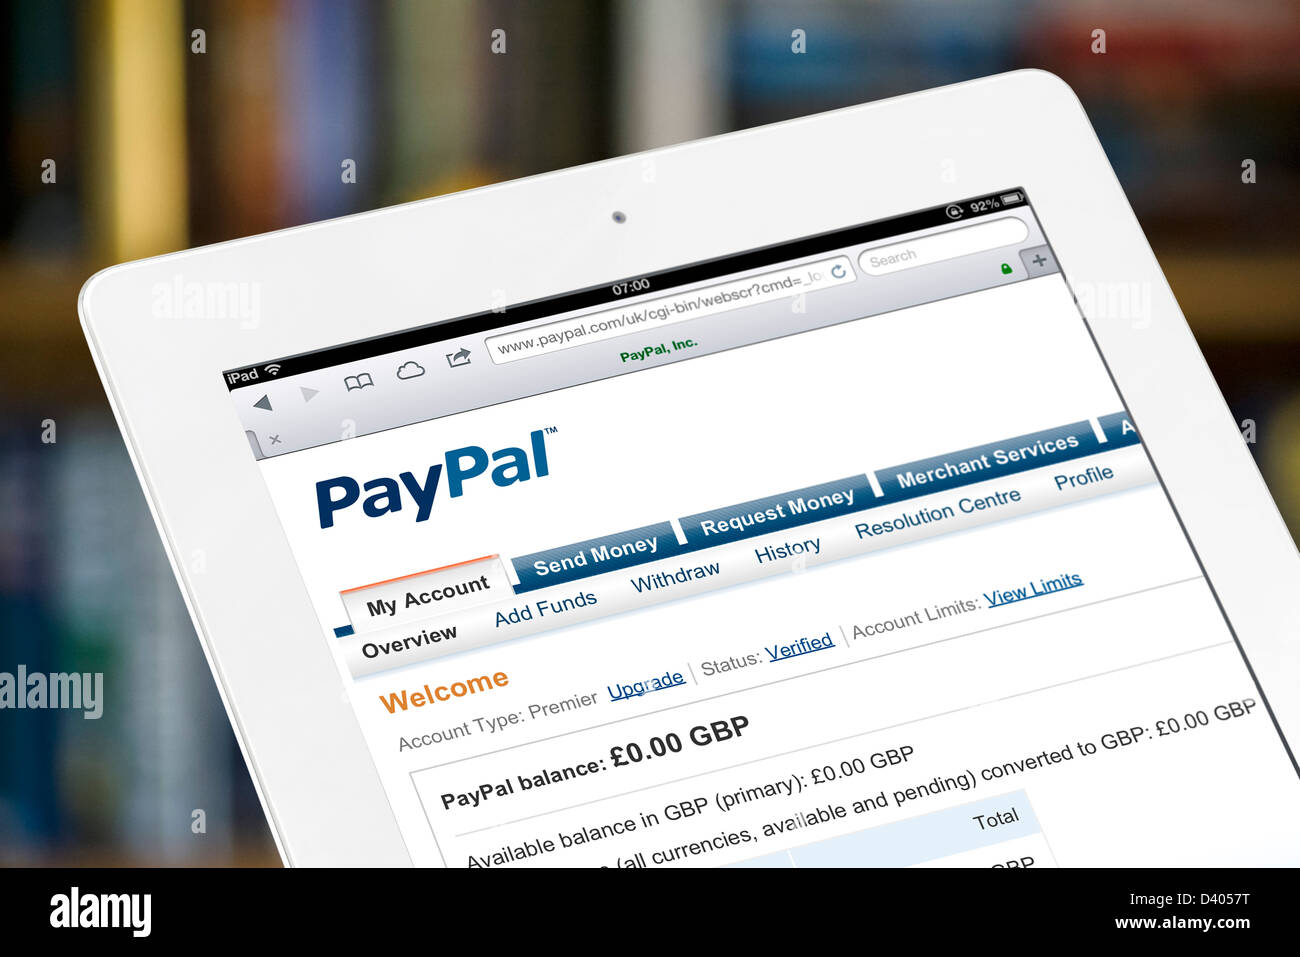 Viewing a PayPal account online on a 4th generation Apple